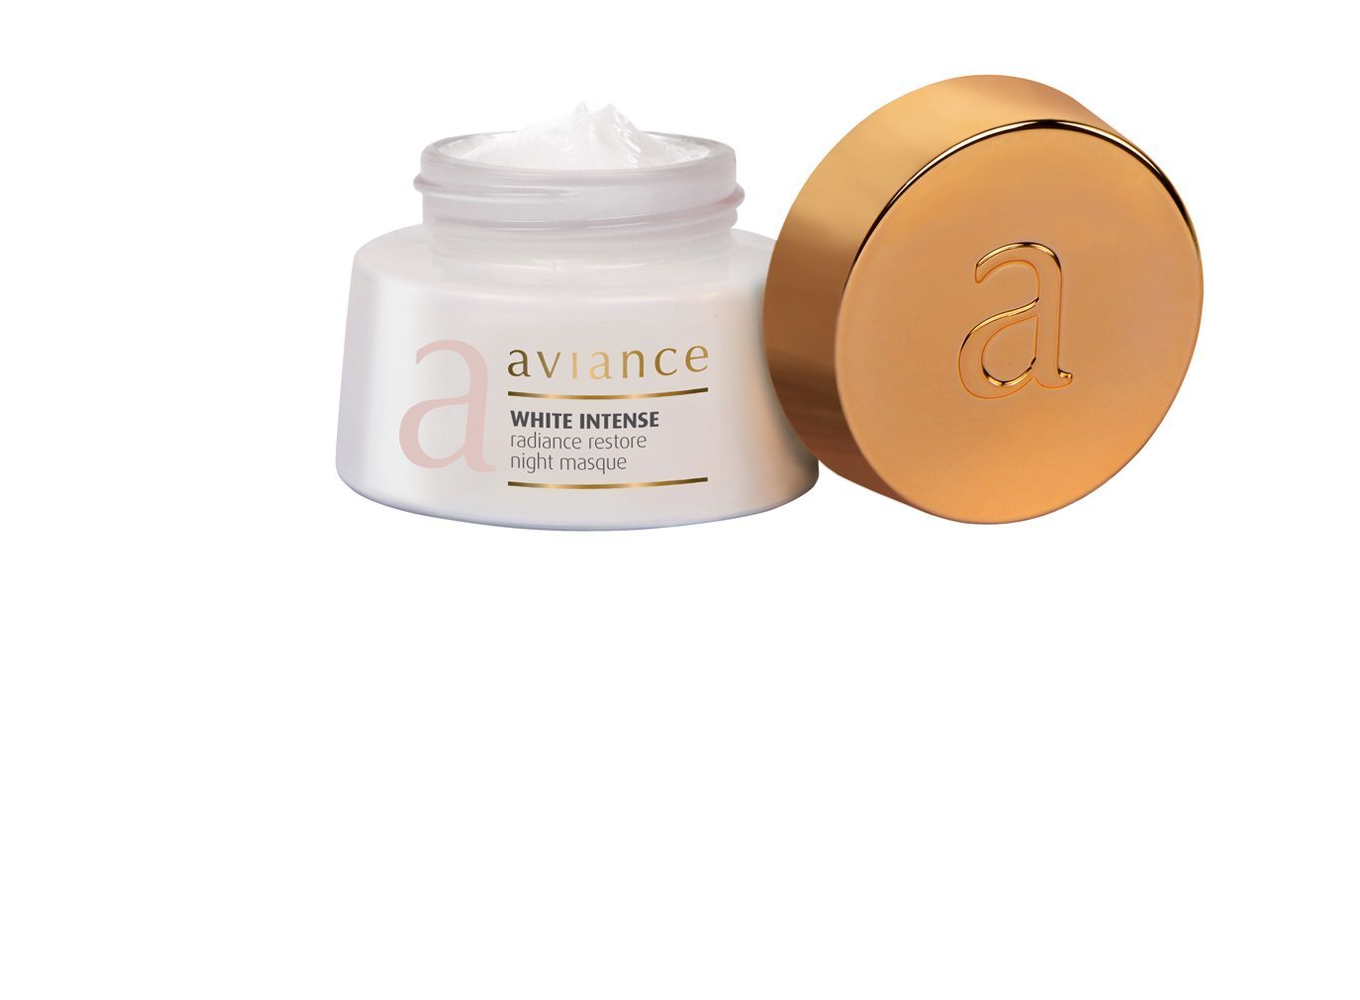 Buy Aviance White Intense Radiance Restore Night Masque, 40g